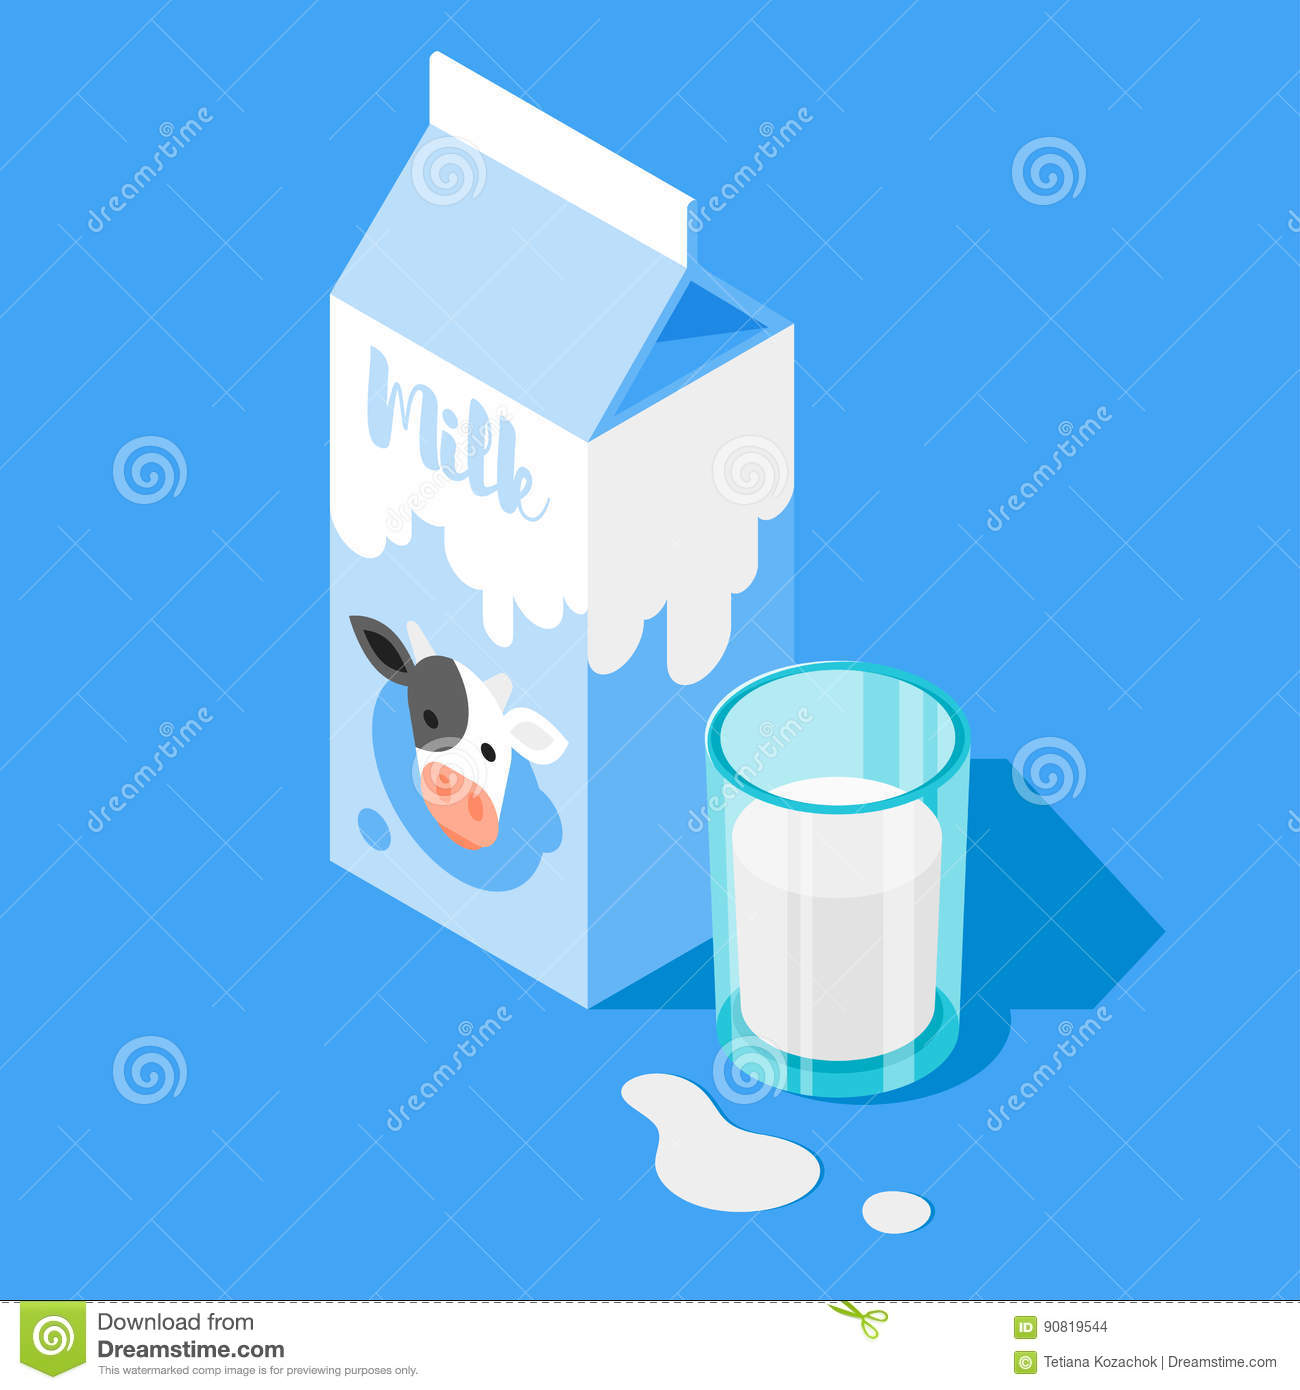 Vector 3d isometric illustration of milk packing and a glass of milk on blue background.